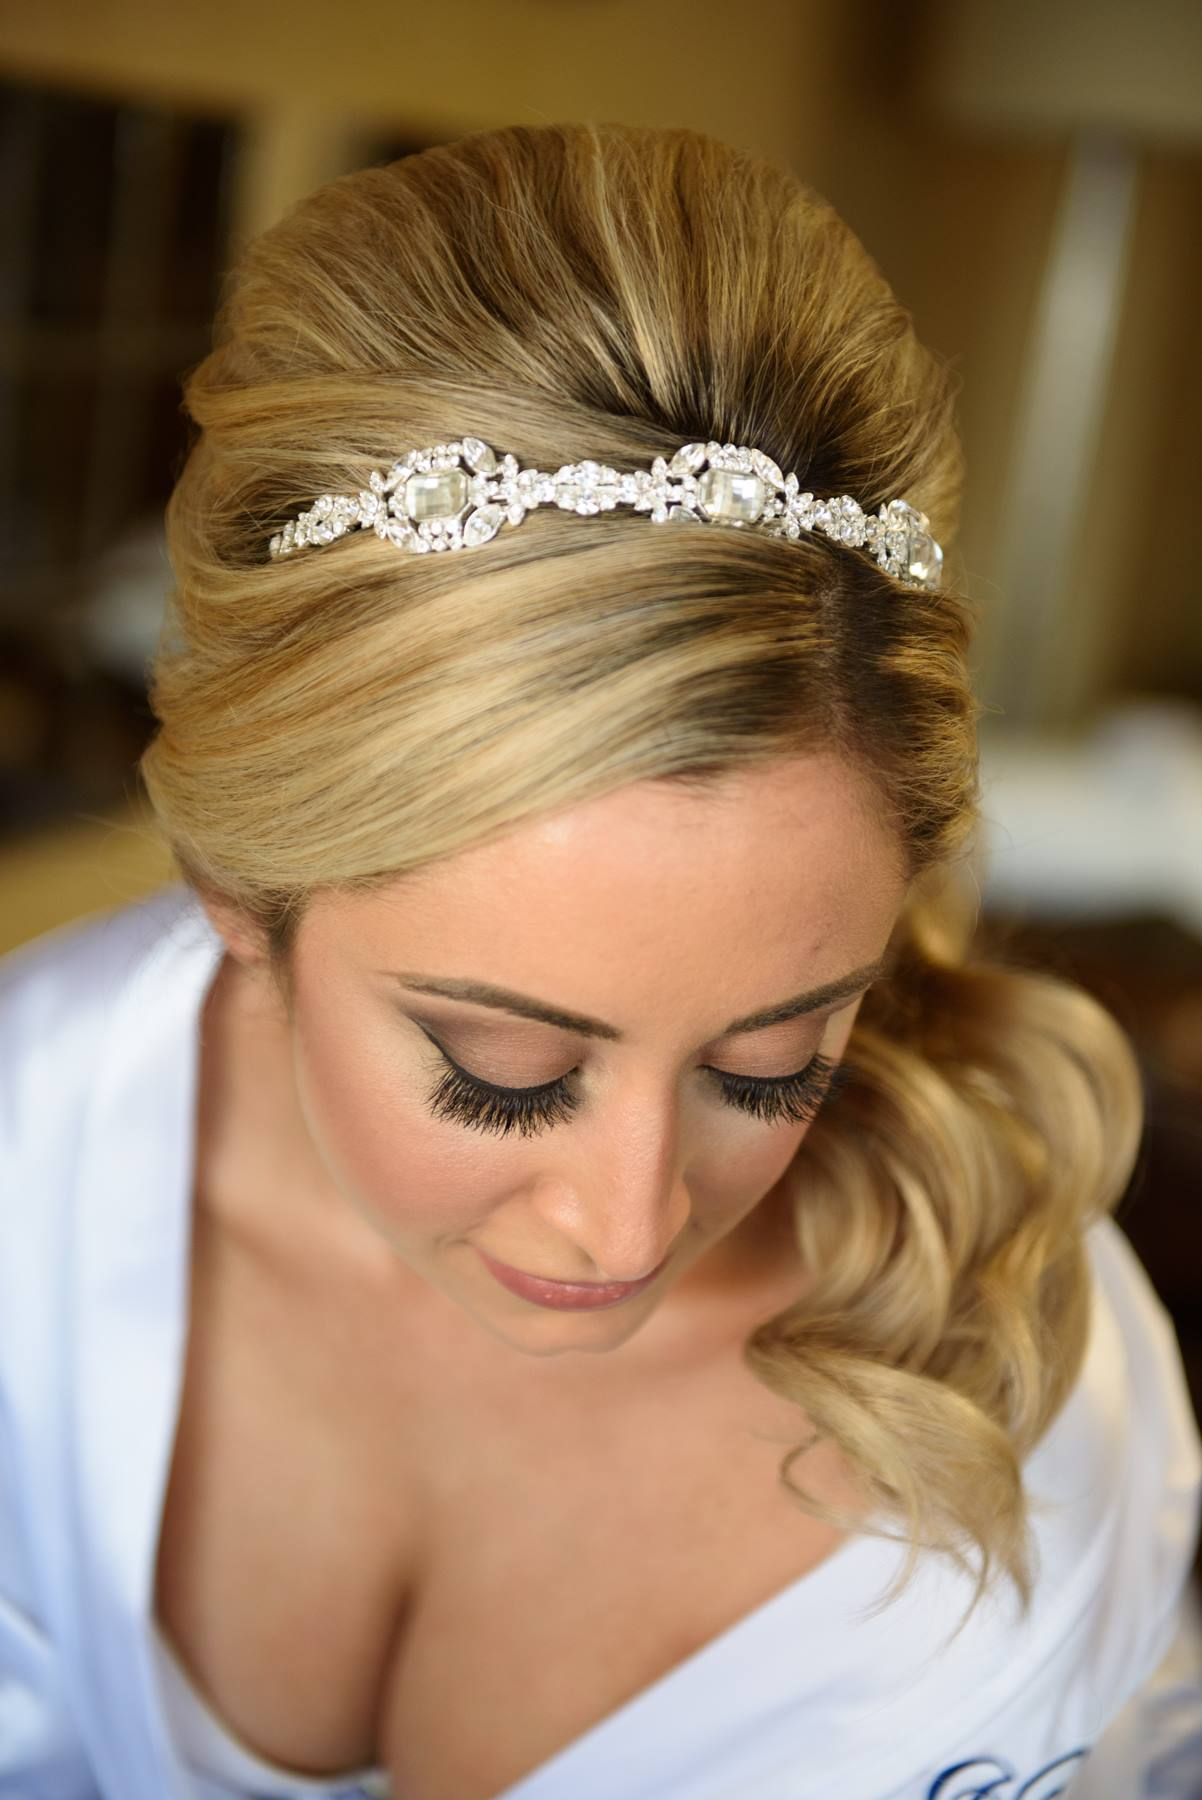 jeweled-headband-in-bride's-hair.jpg